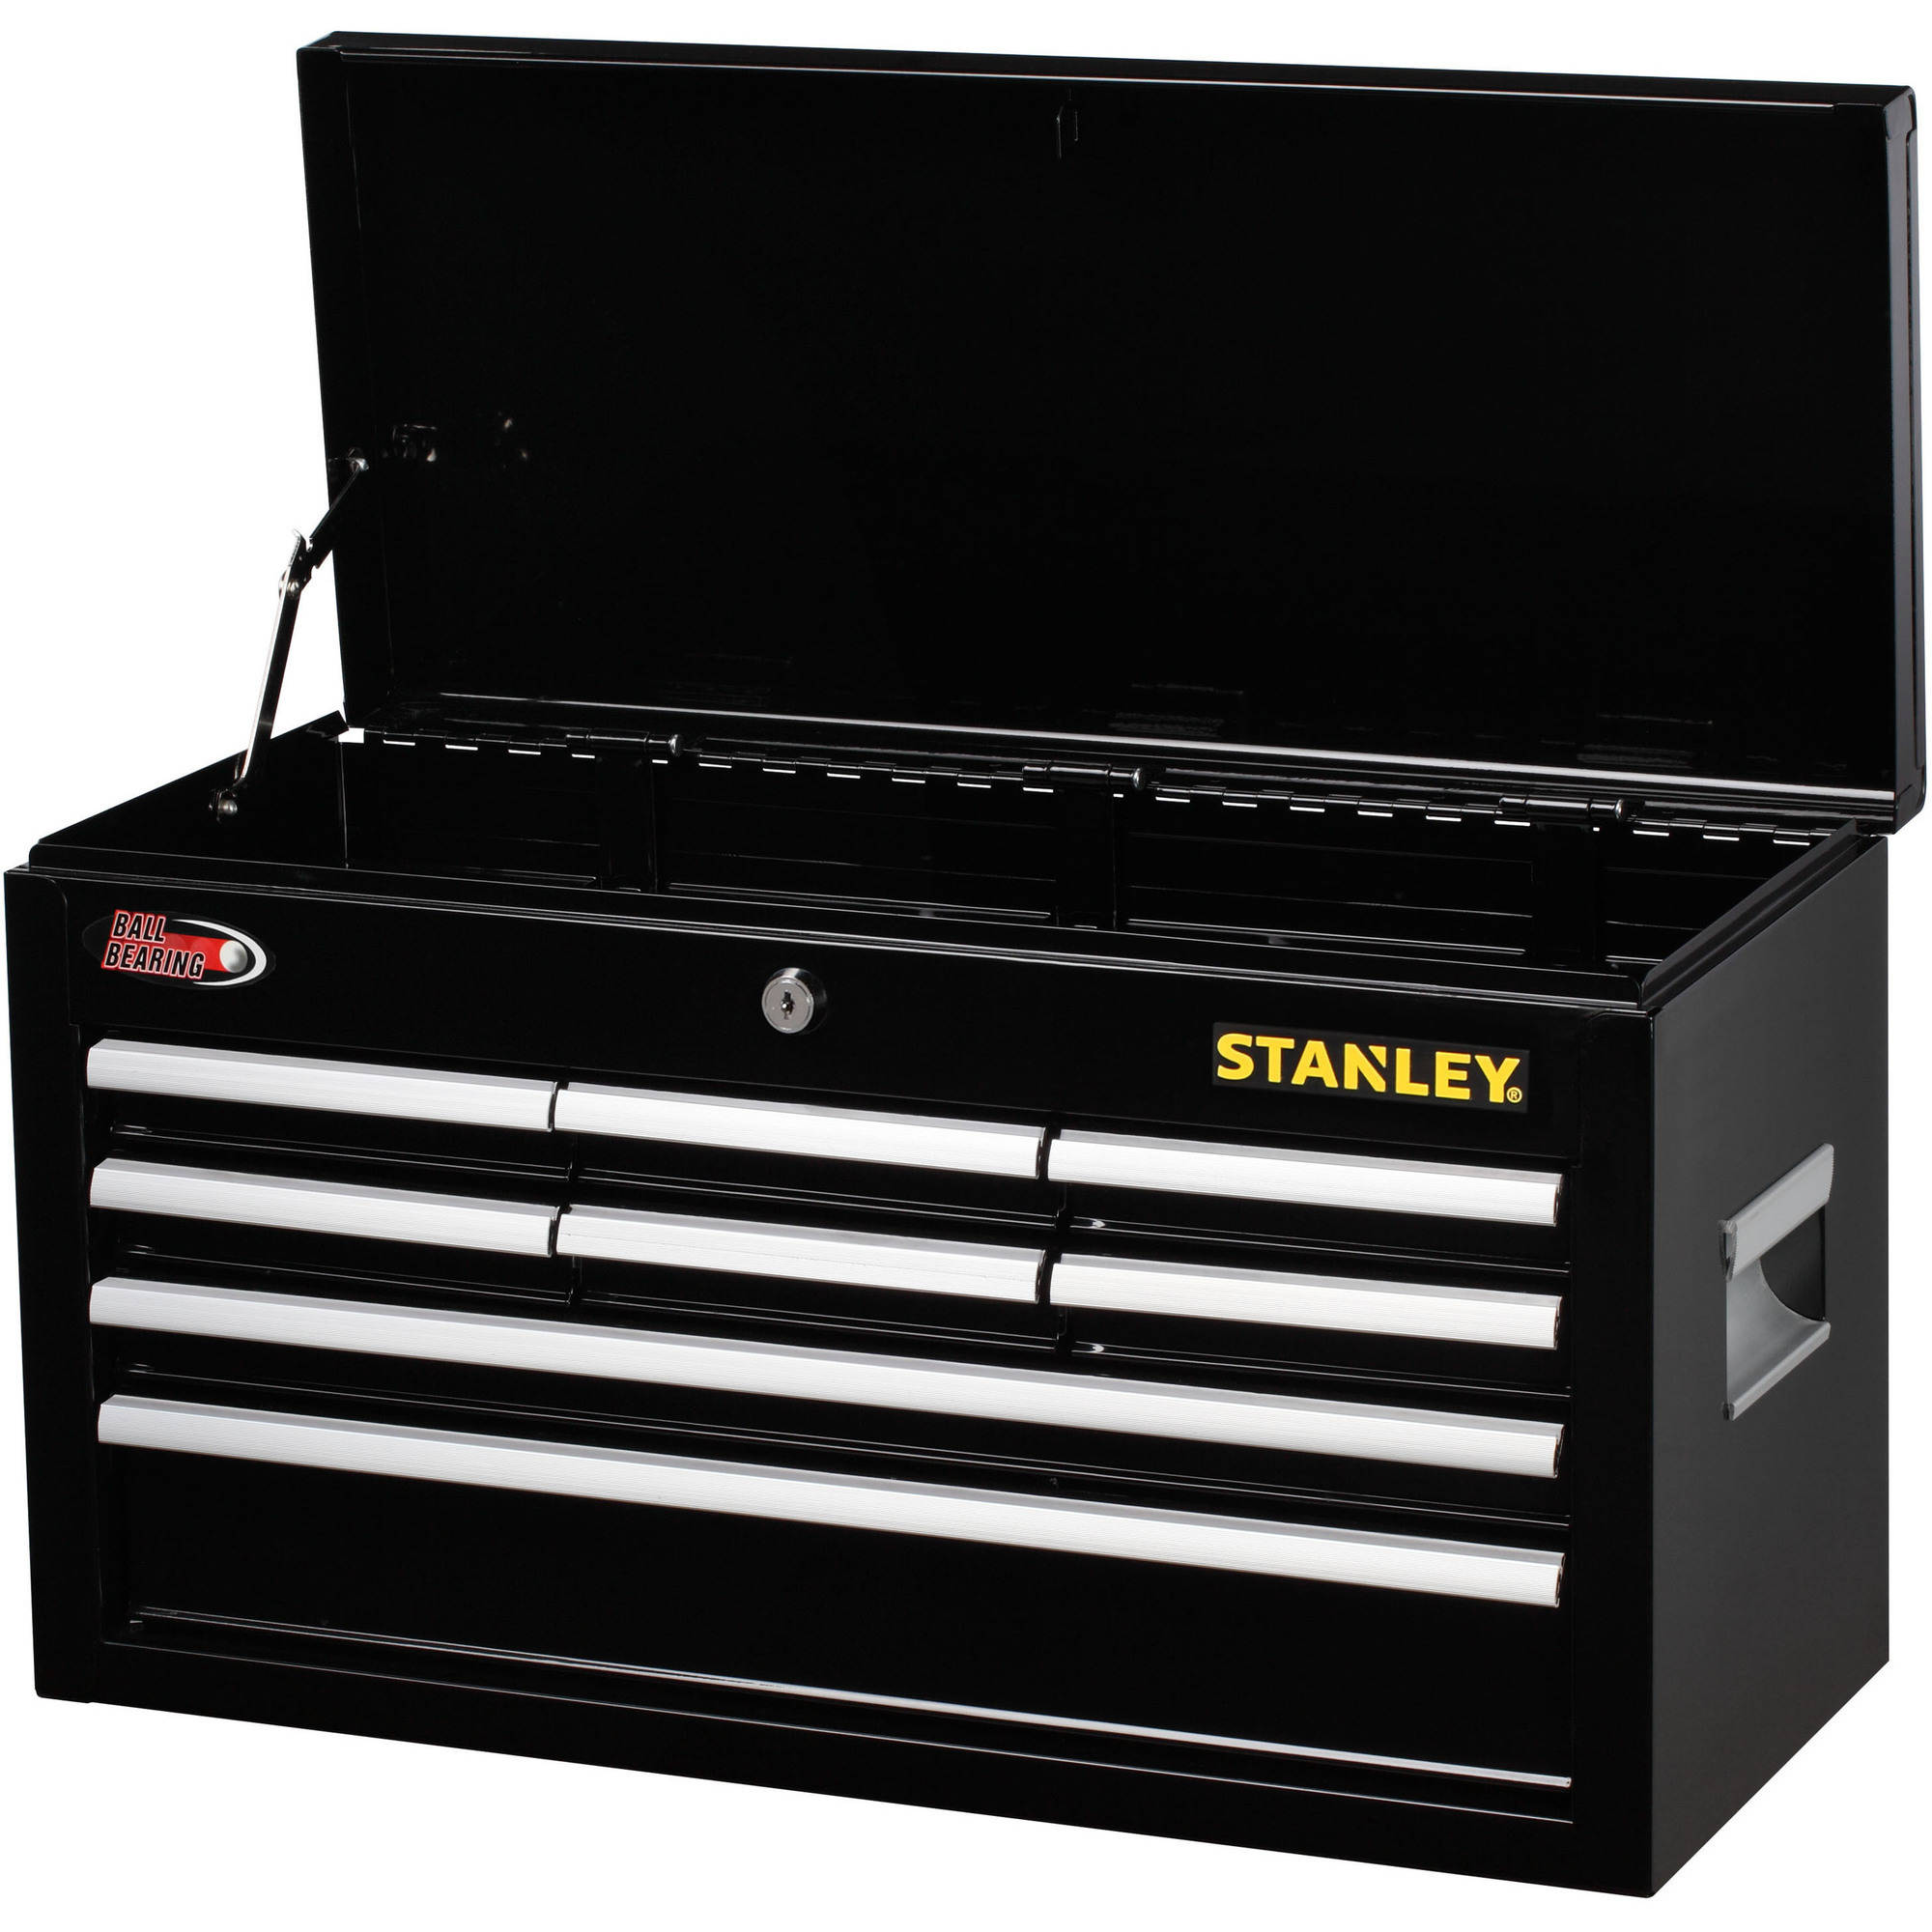 Stanley 8-Drawer Chest, Black